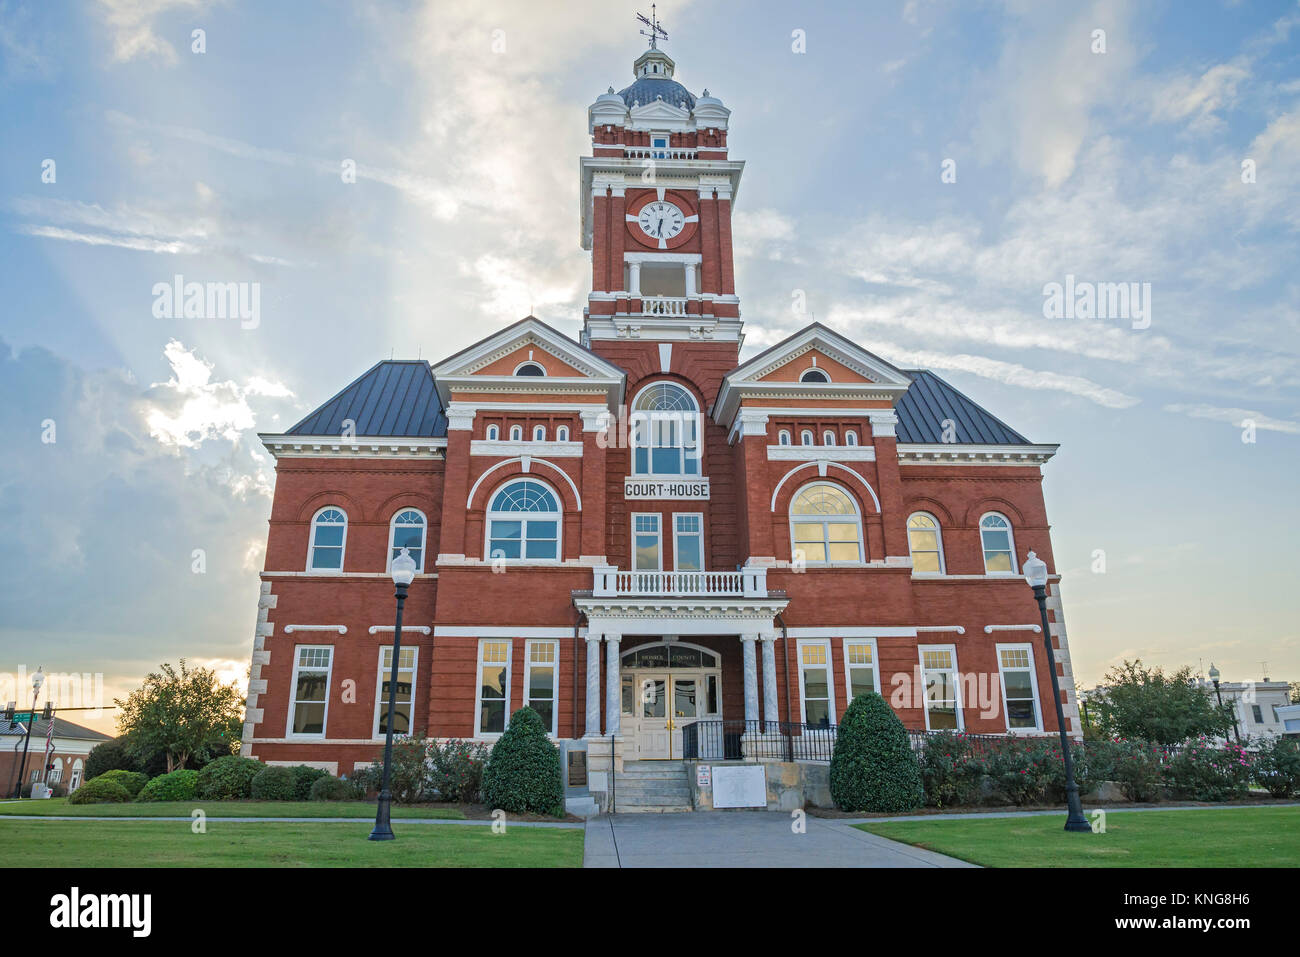 Groovy Monroe County Courthouse In Forsyth Georgia Was Built In Interior Design Ideas Skatsoteloinfo